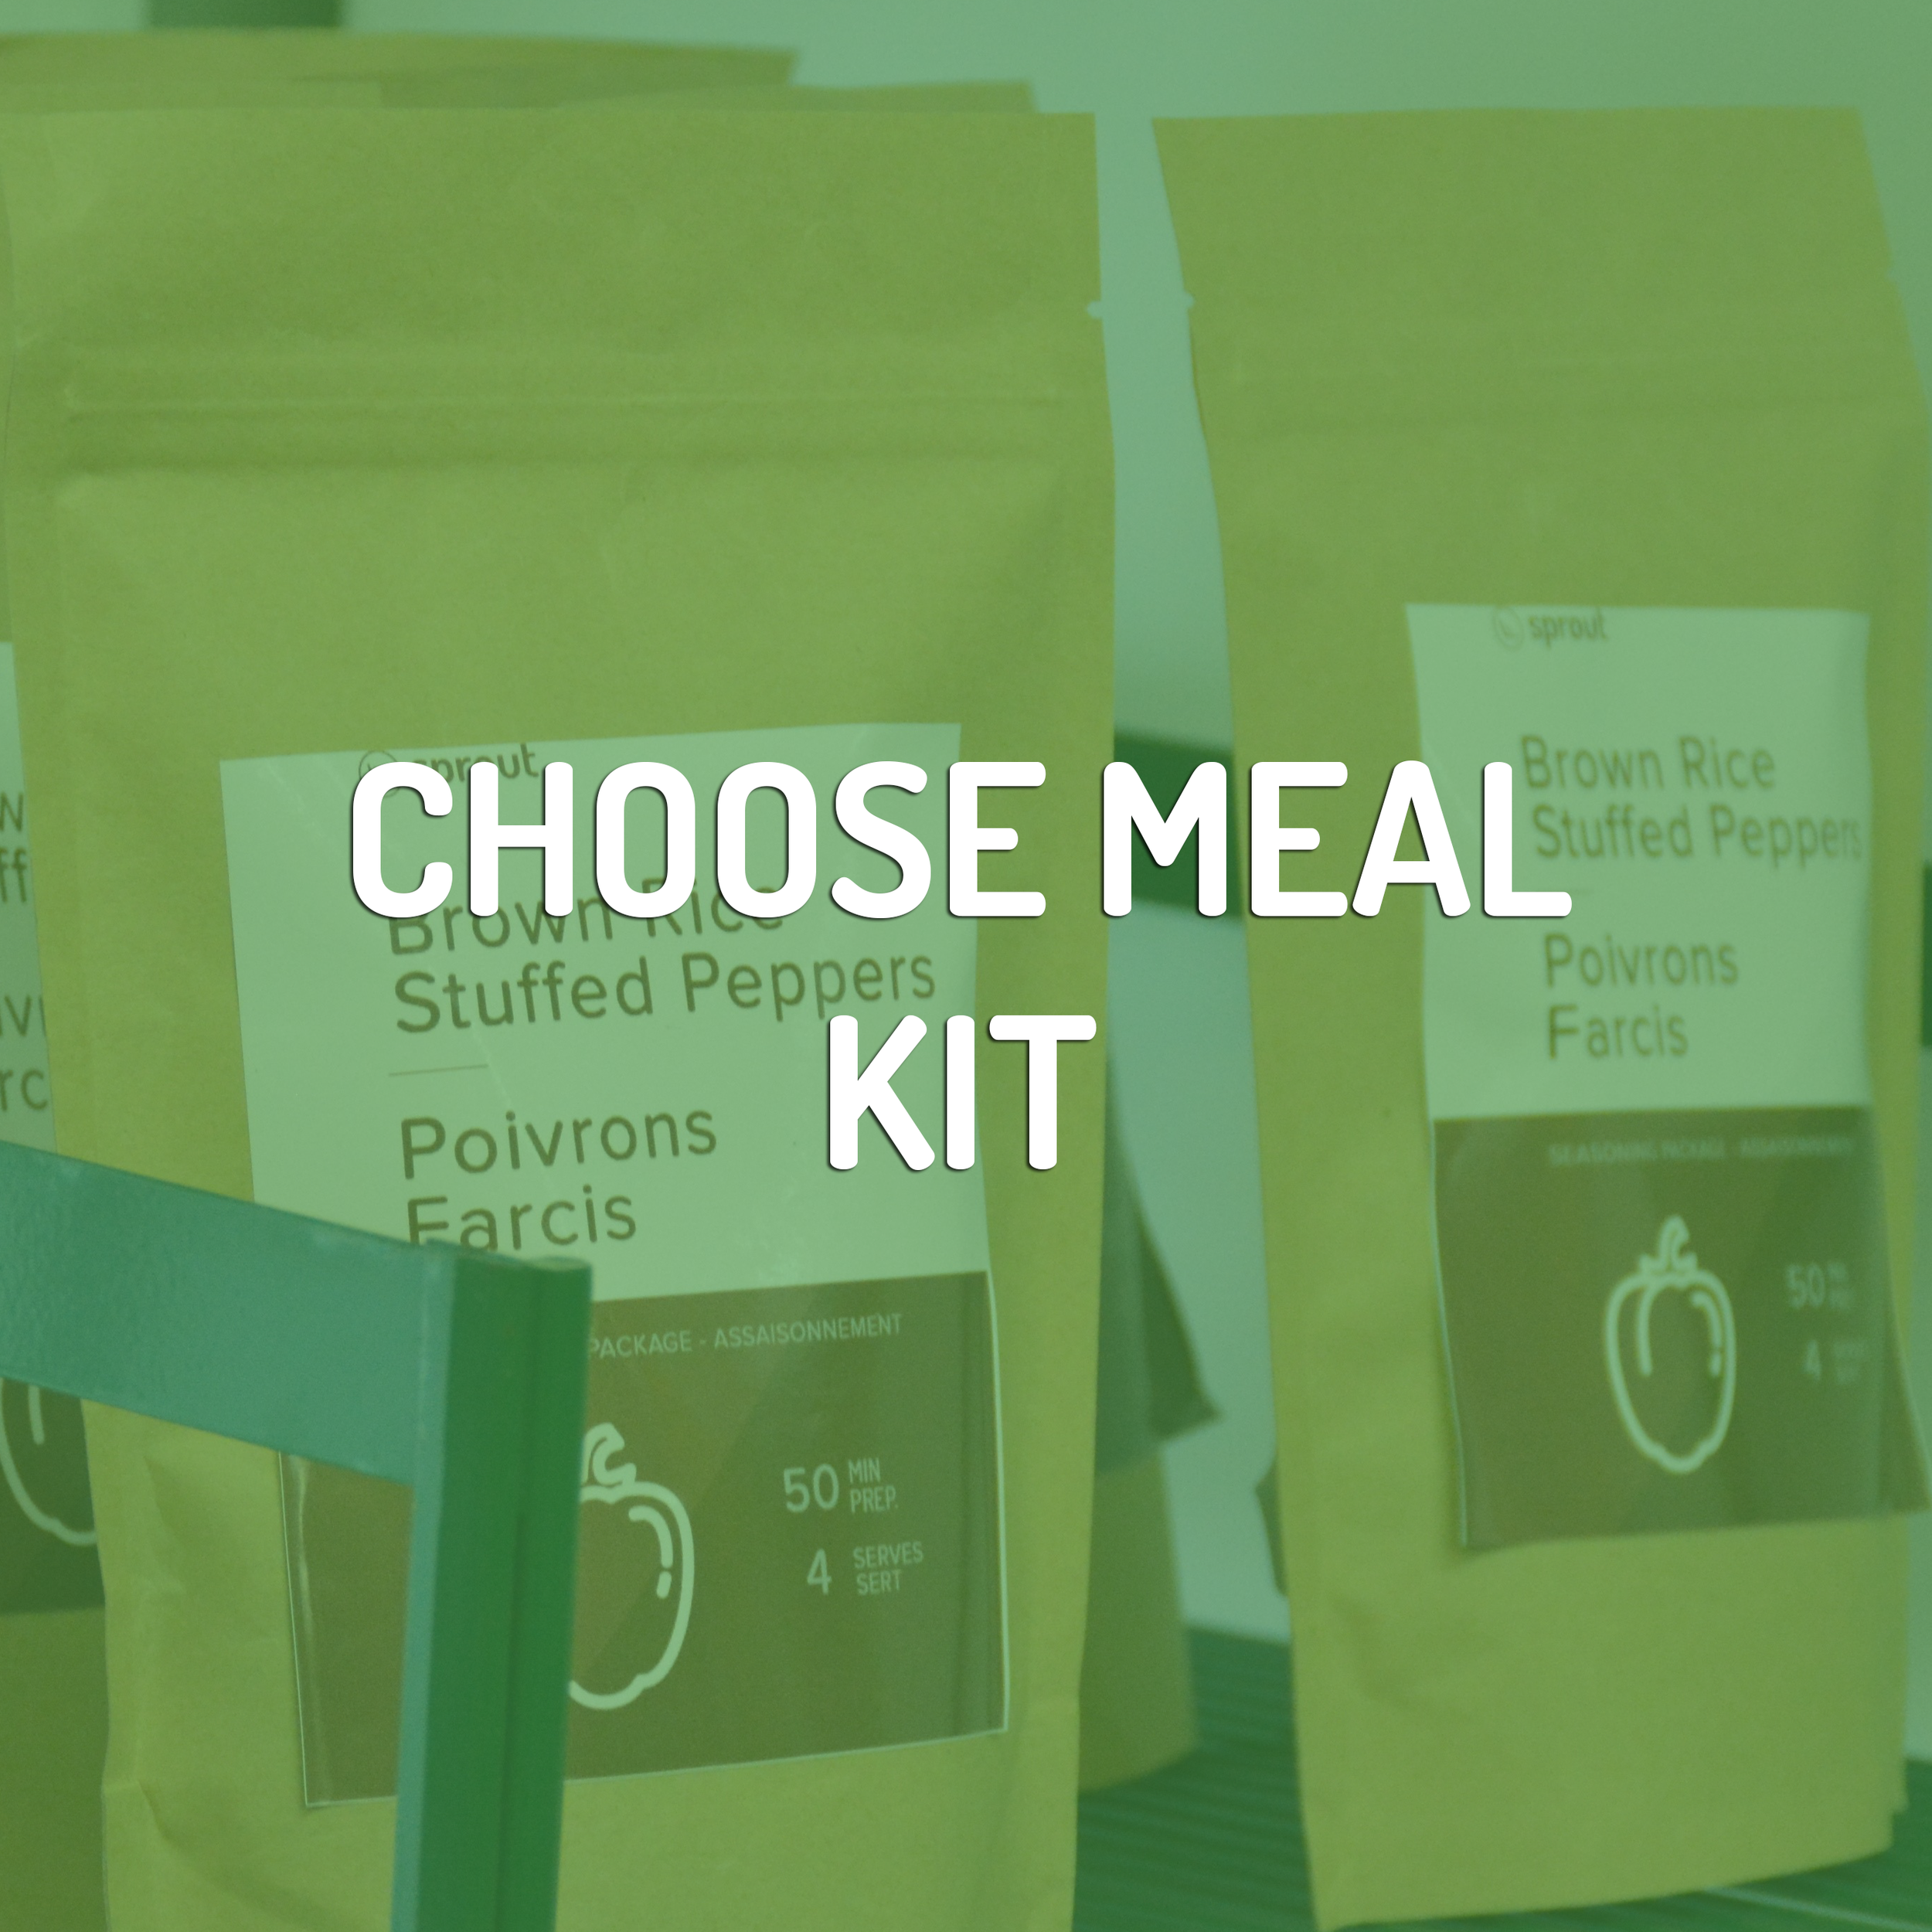 Sprout Meal Kits have all the dry ingredients necessary to make a tasty meal.